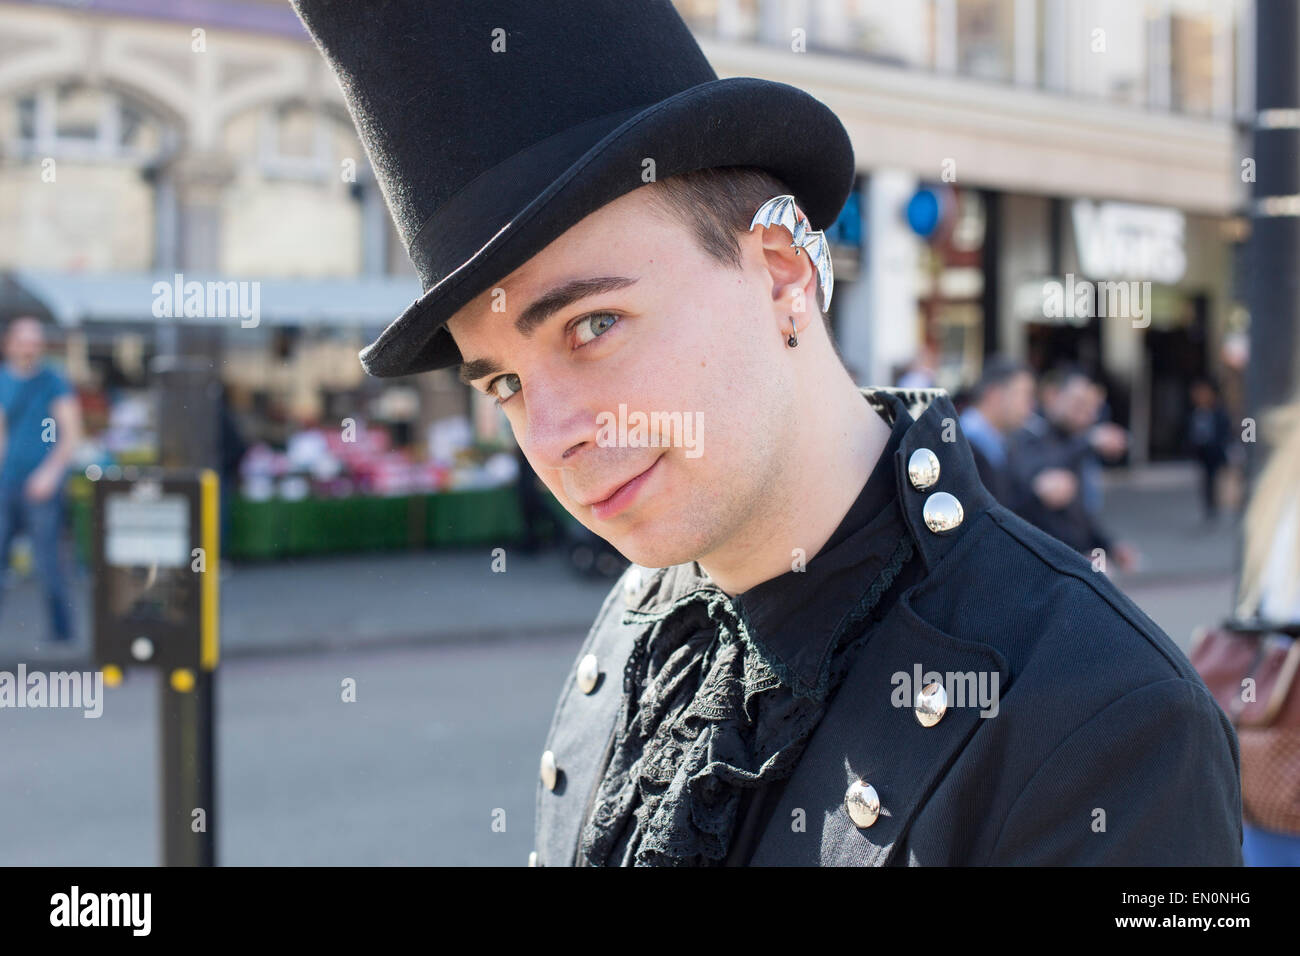 Steampunk Willy - Stock Image